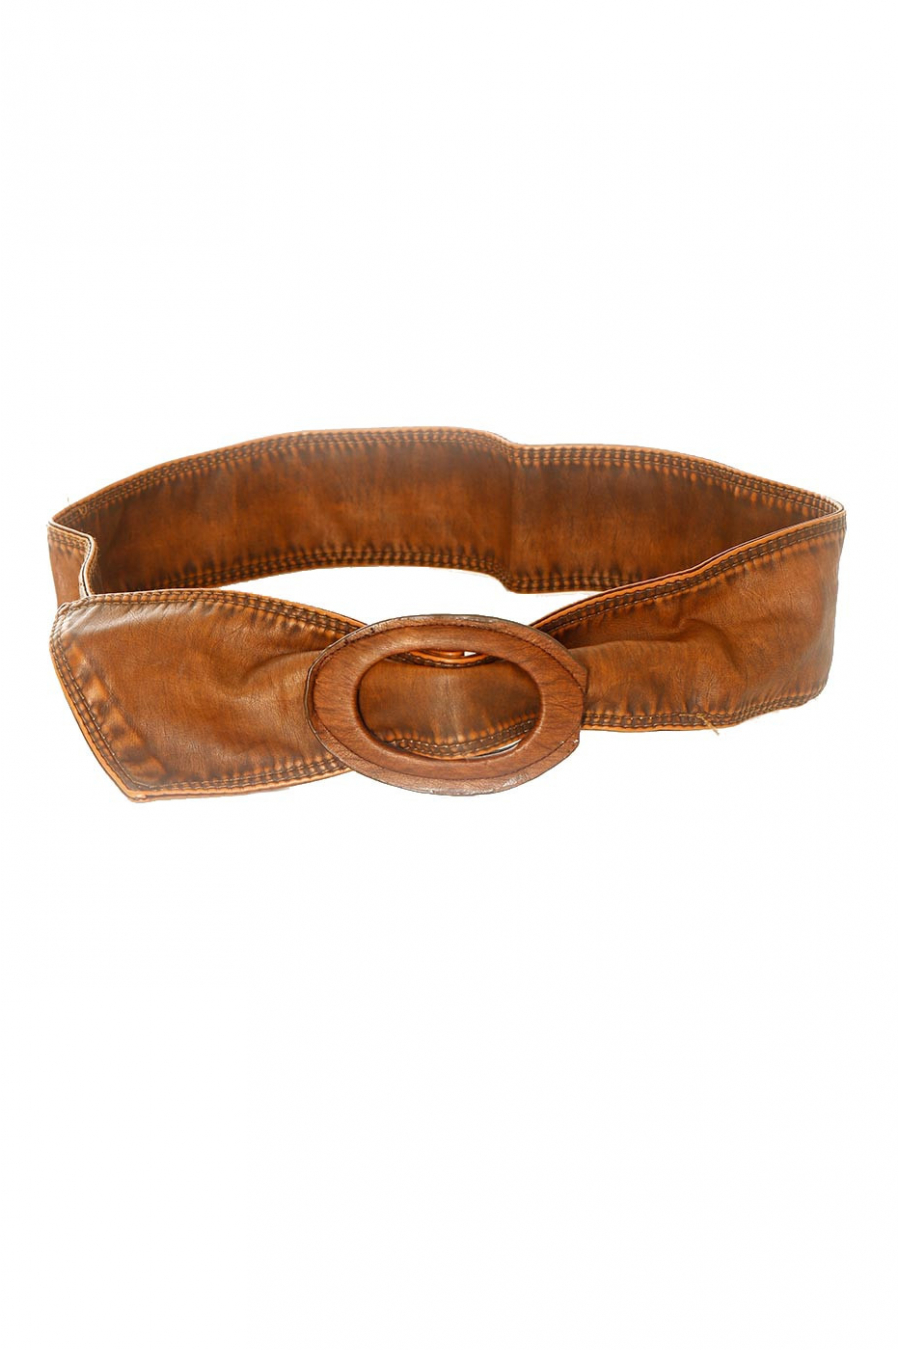 Soft belt with large choco buckle. BG-3003